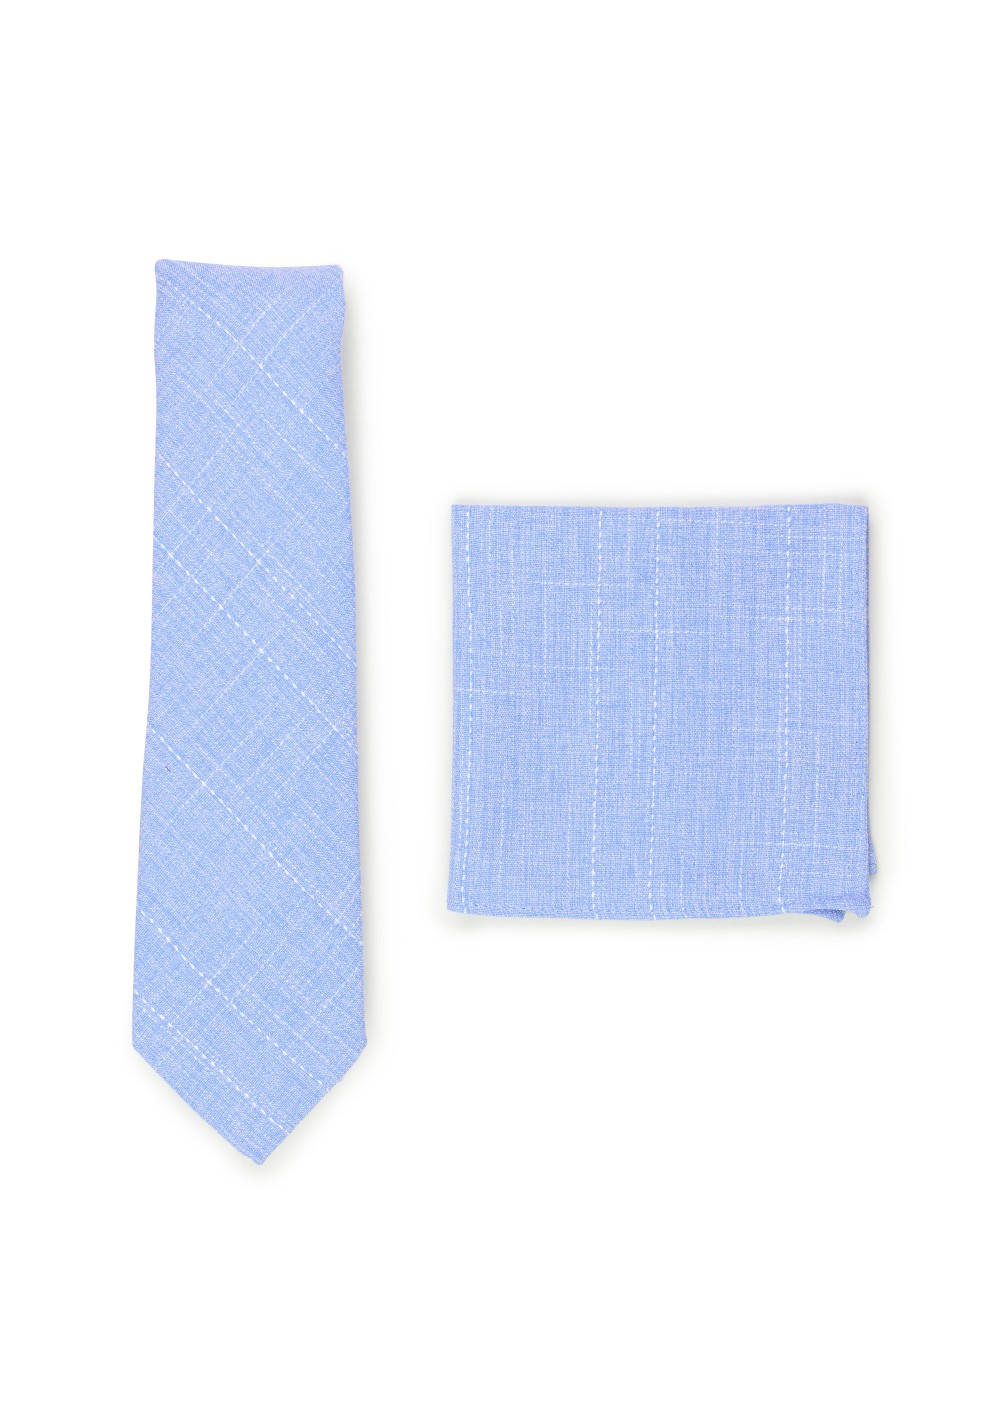 sky blue skinny cotton tie and pocket square